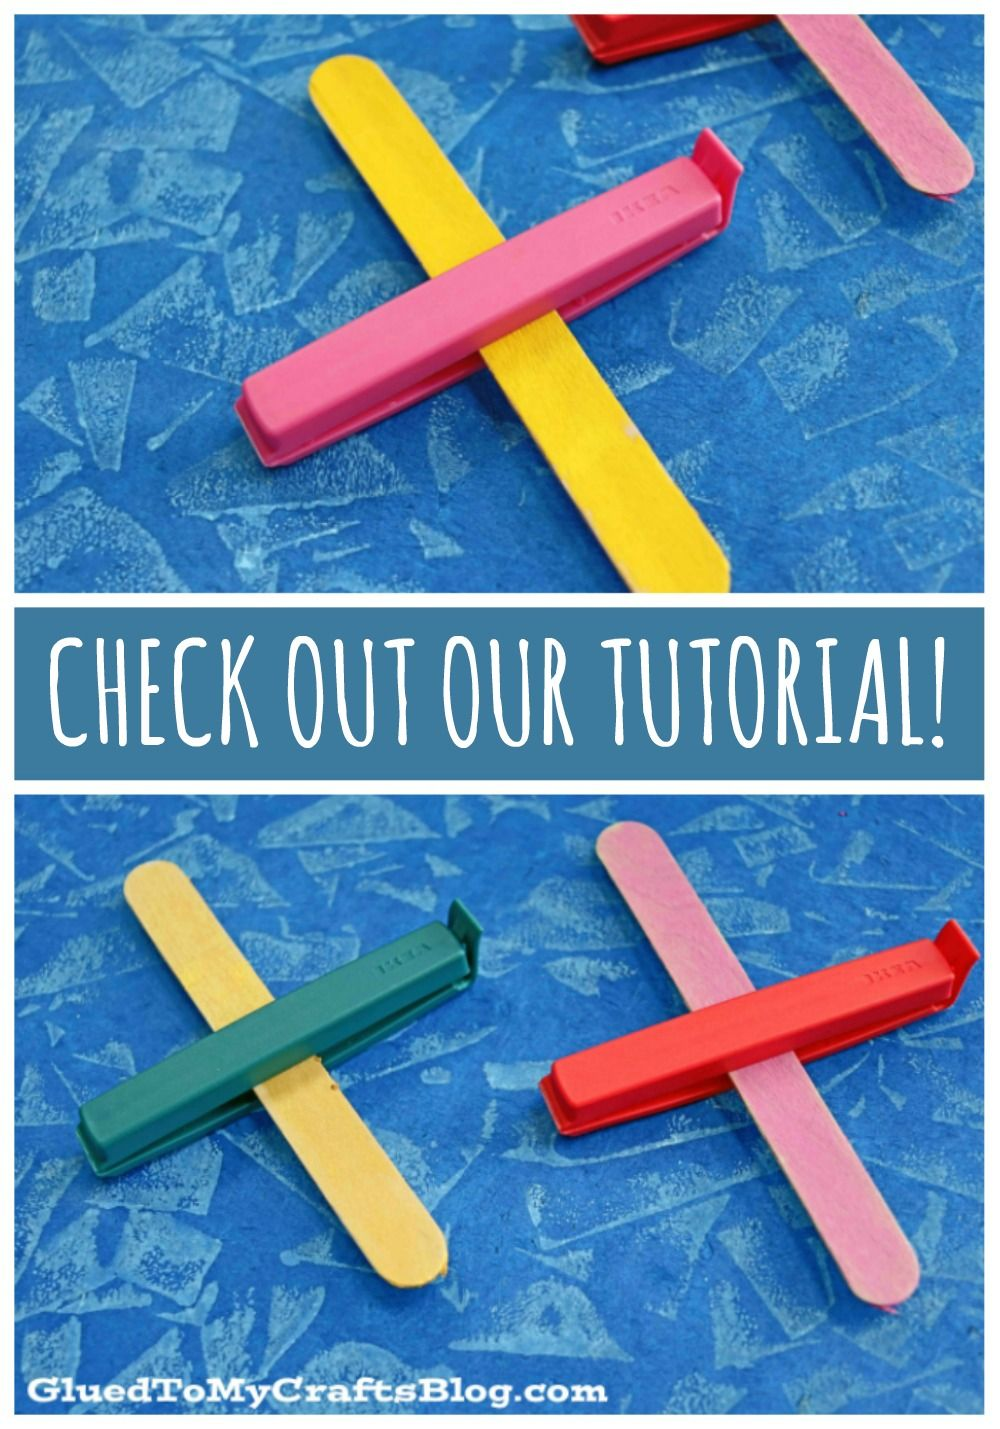 How To Make Chip Clip & Popsicle Stick Airplanes Kid